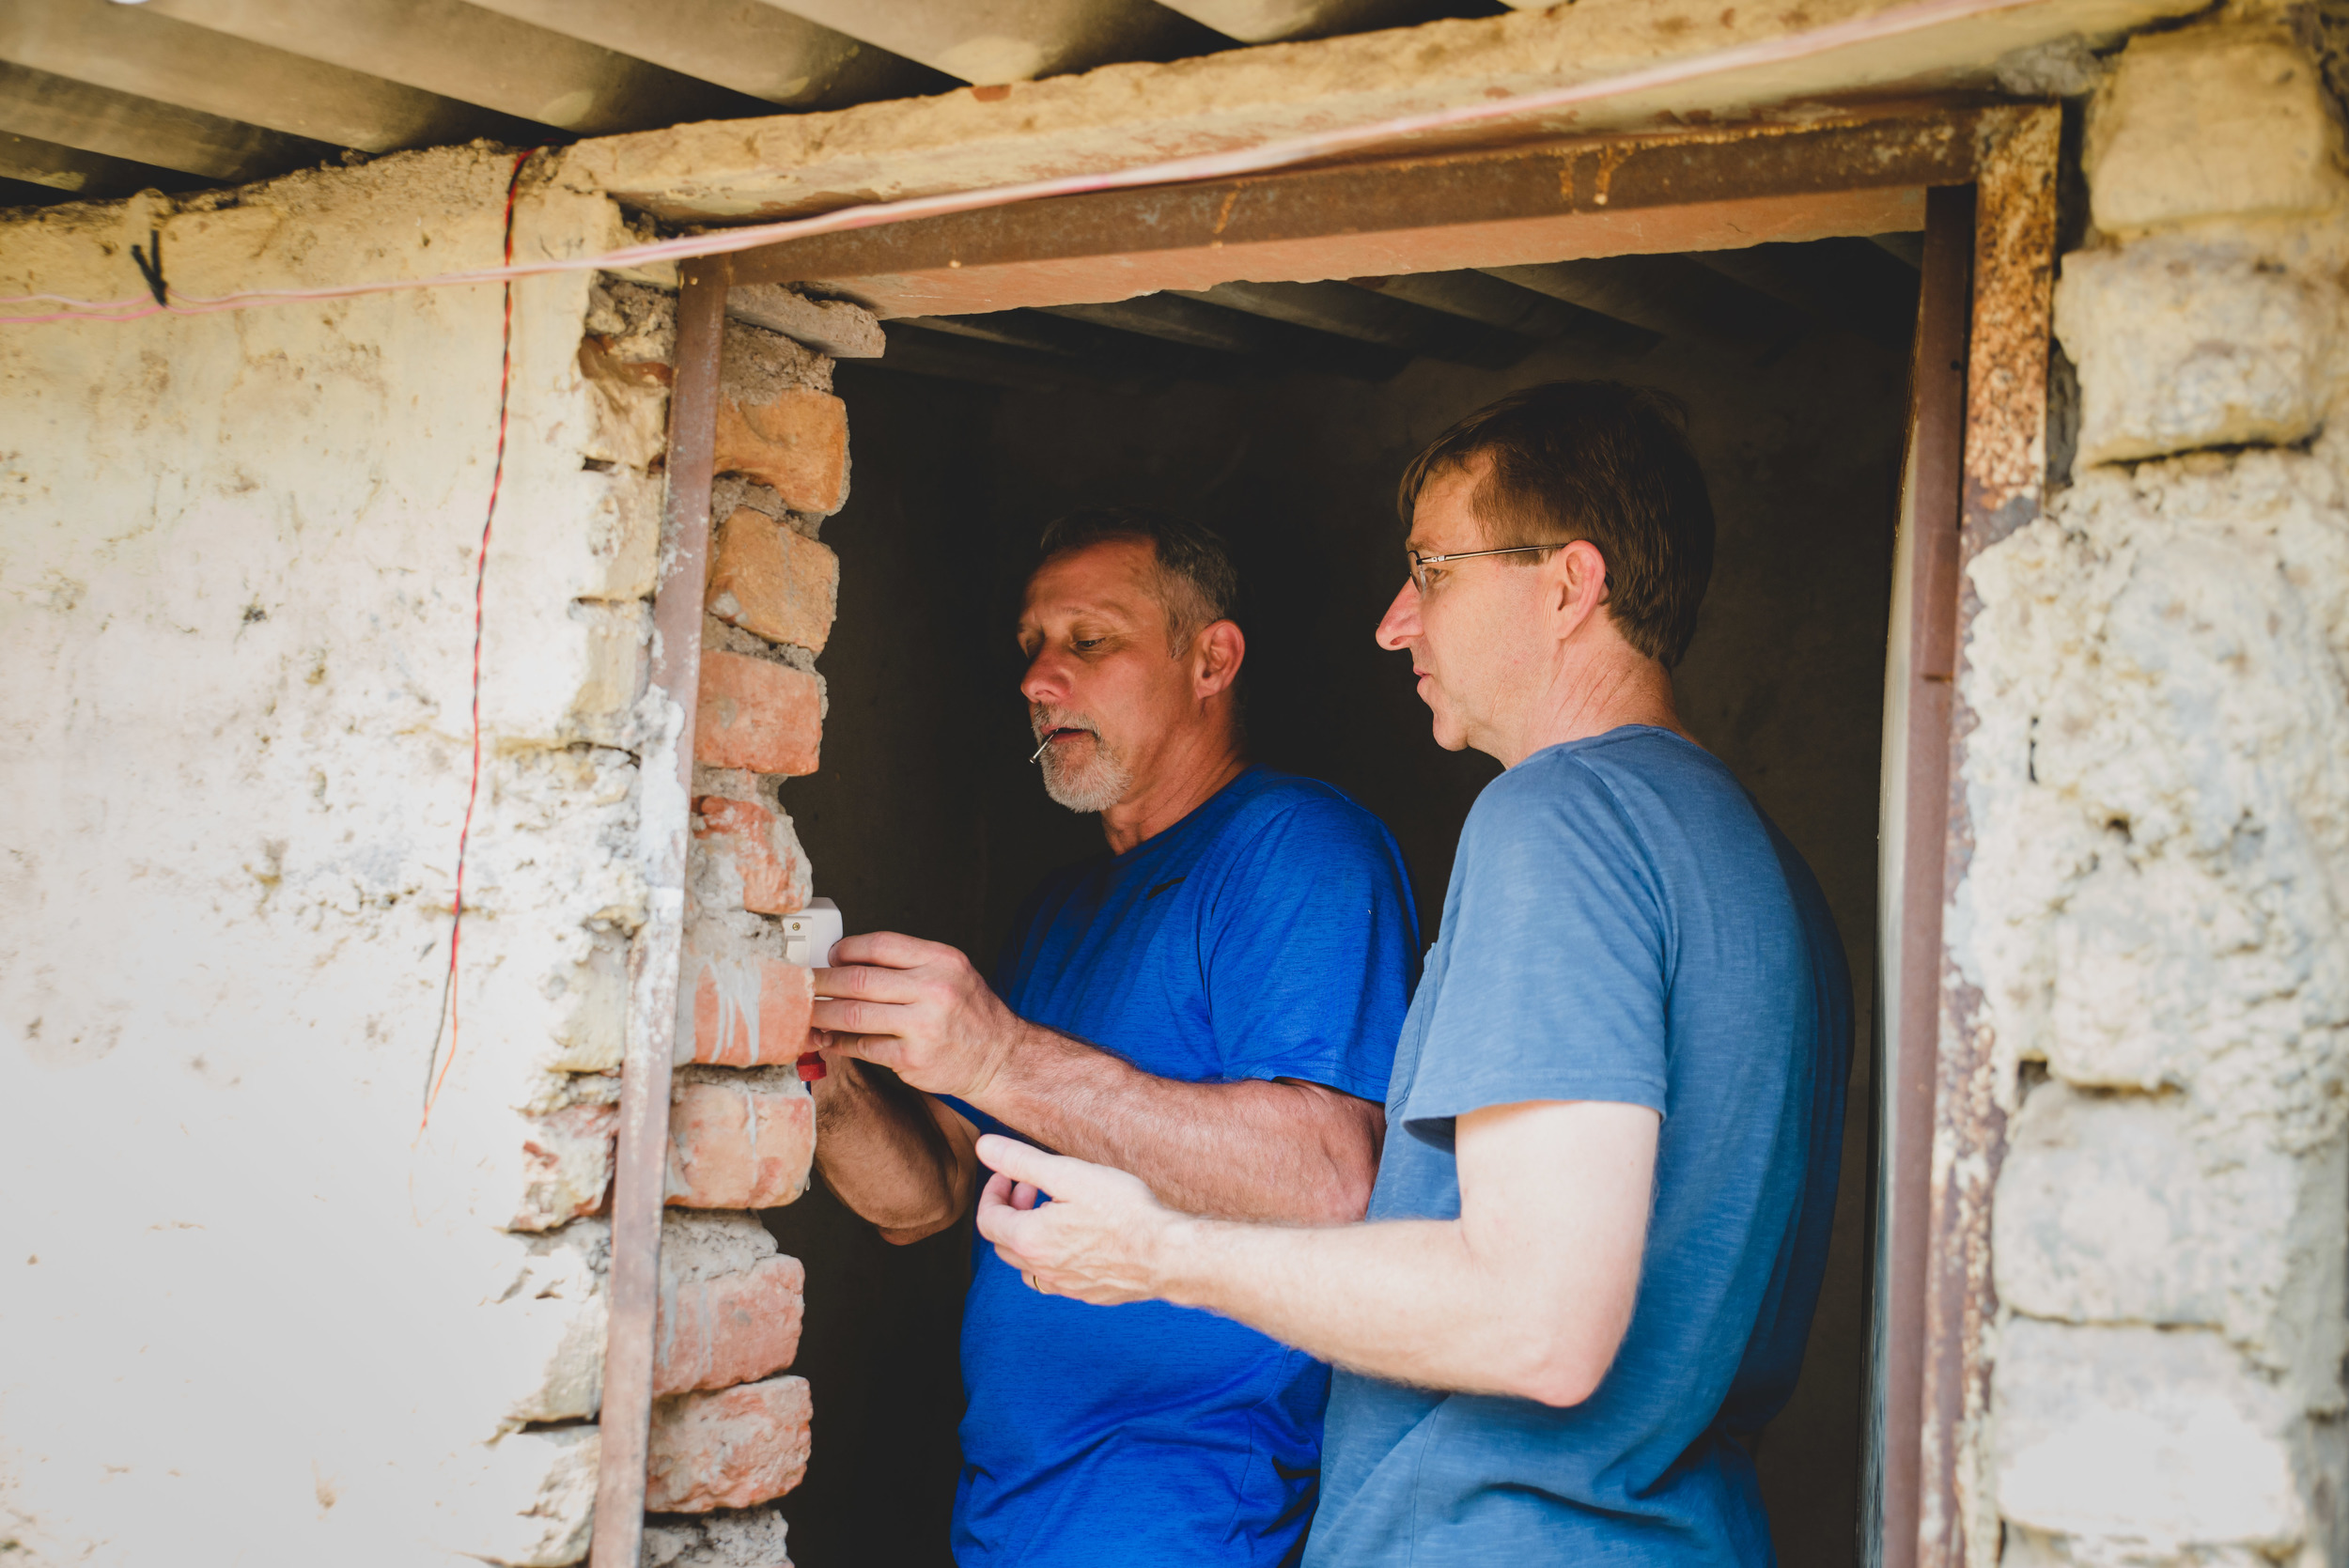 Kevin Maute and Greg Jobe, both fathers to G.O.D. India team members,installed lighting for bathrooms at the local K-10 school. Though a seemingly small addition, inadequate and unsafe restrooms are a leading cause of girls dropping out of school worldwide. It is these small, humanizing actions that produce safer environments and ultimately, ensure better learning.